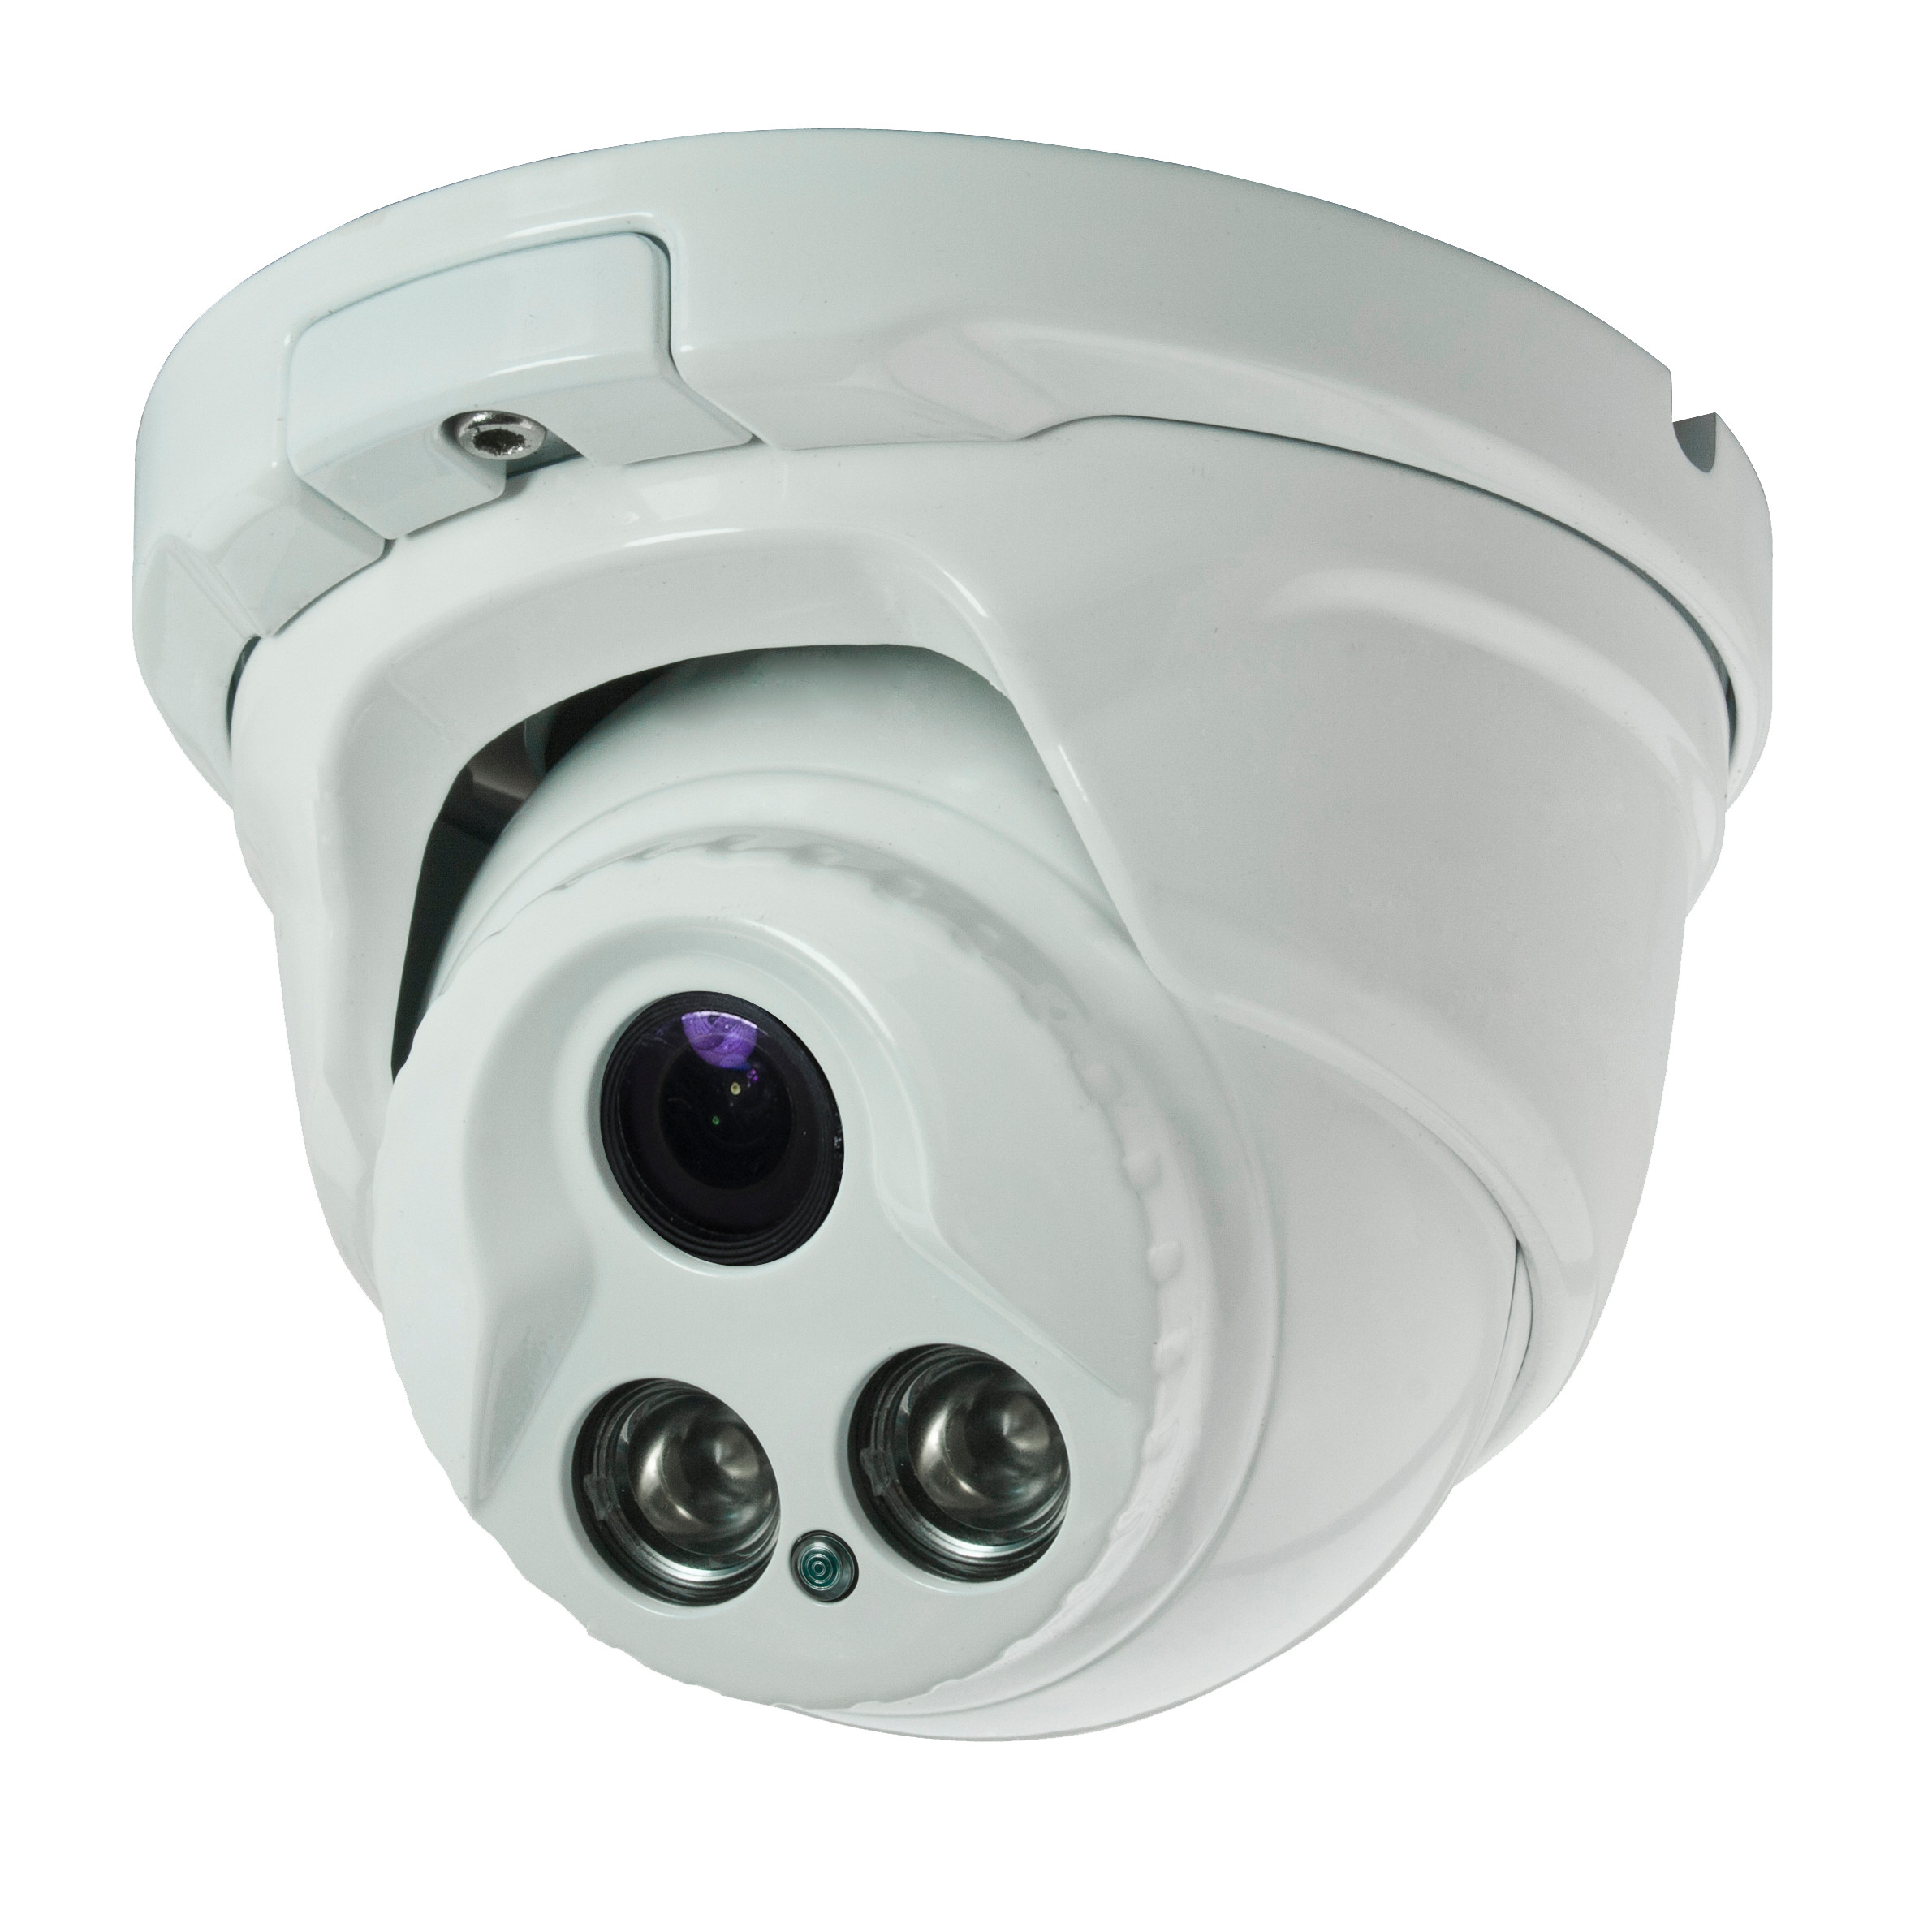 OUTDOOR  ULTRA ARRAY HD-TVI VANDAL DOME CAMERA (LUX-E2M-OD3MAR/I)